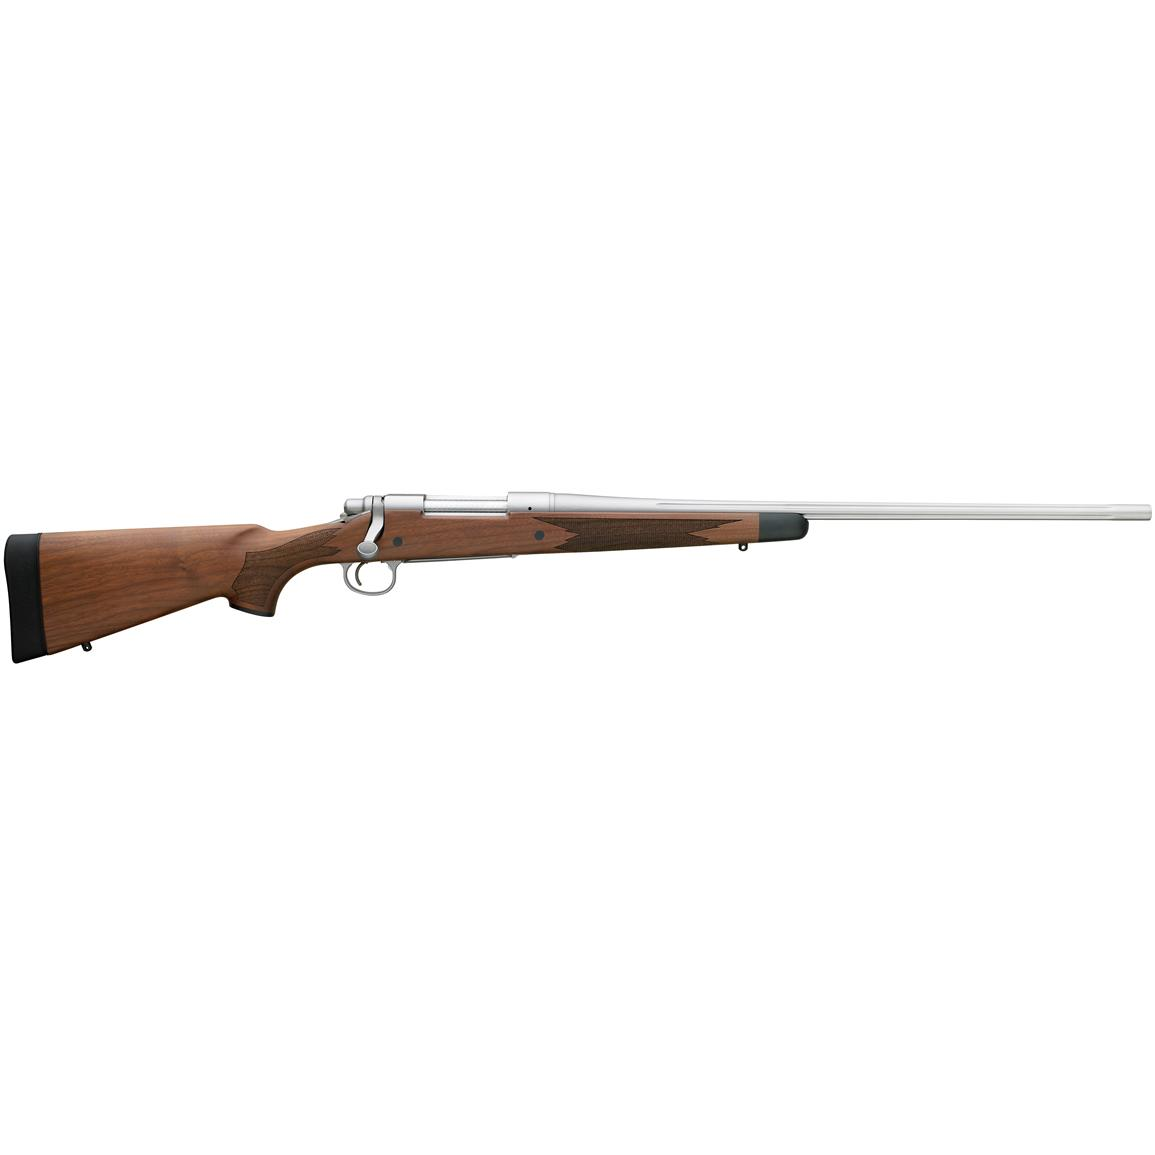 "Remington Model 700 CDL SF, Bolt Action, 7mm Remington Magnum, 26"" Barrel, 3+1 Rounds"